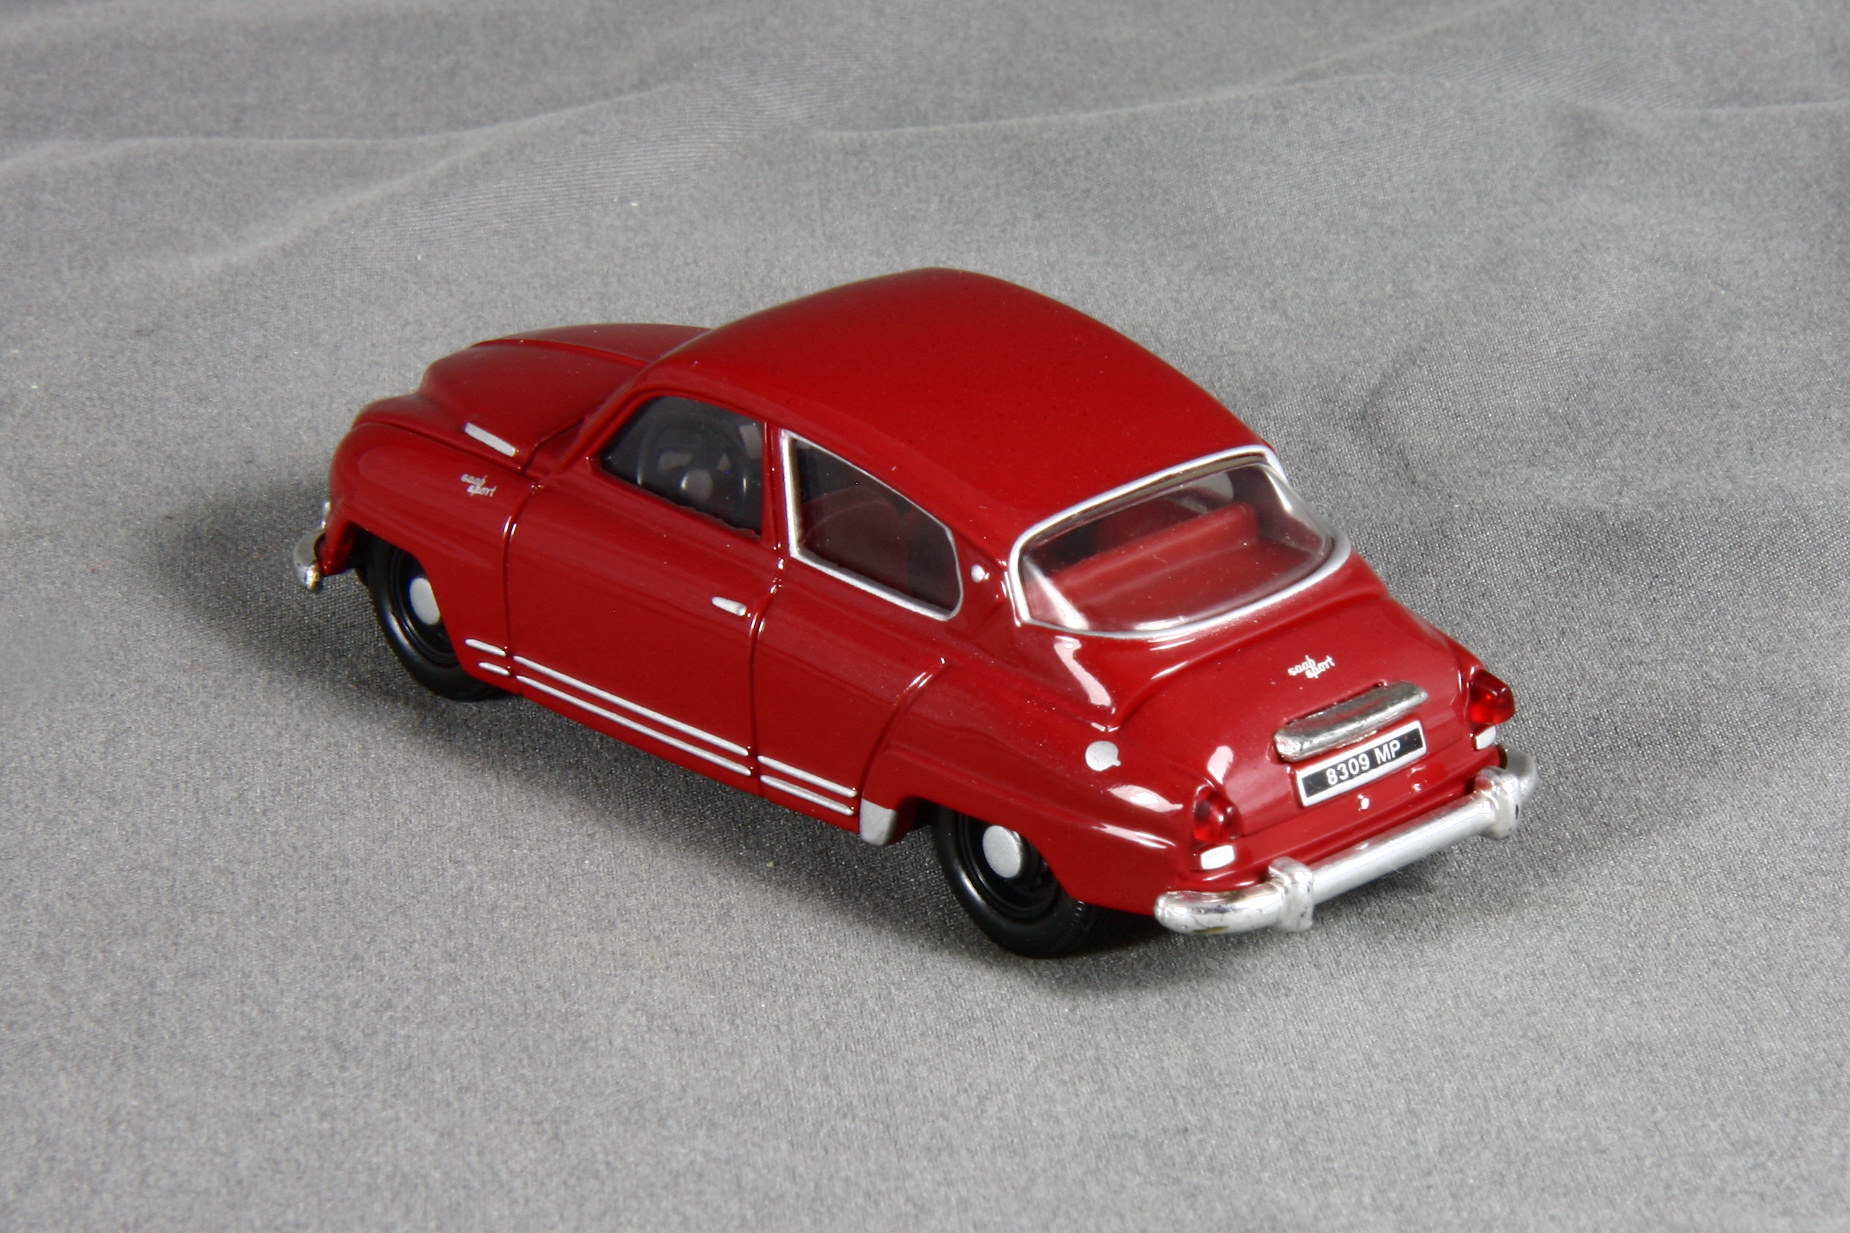 96 Sport - 1961 two-stroke Bild 2